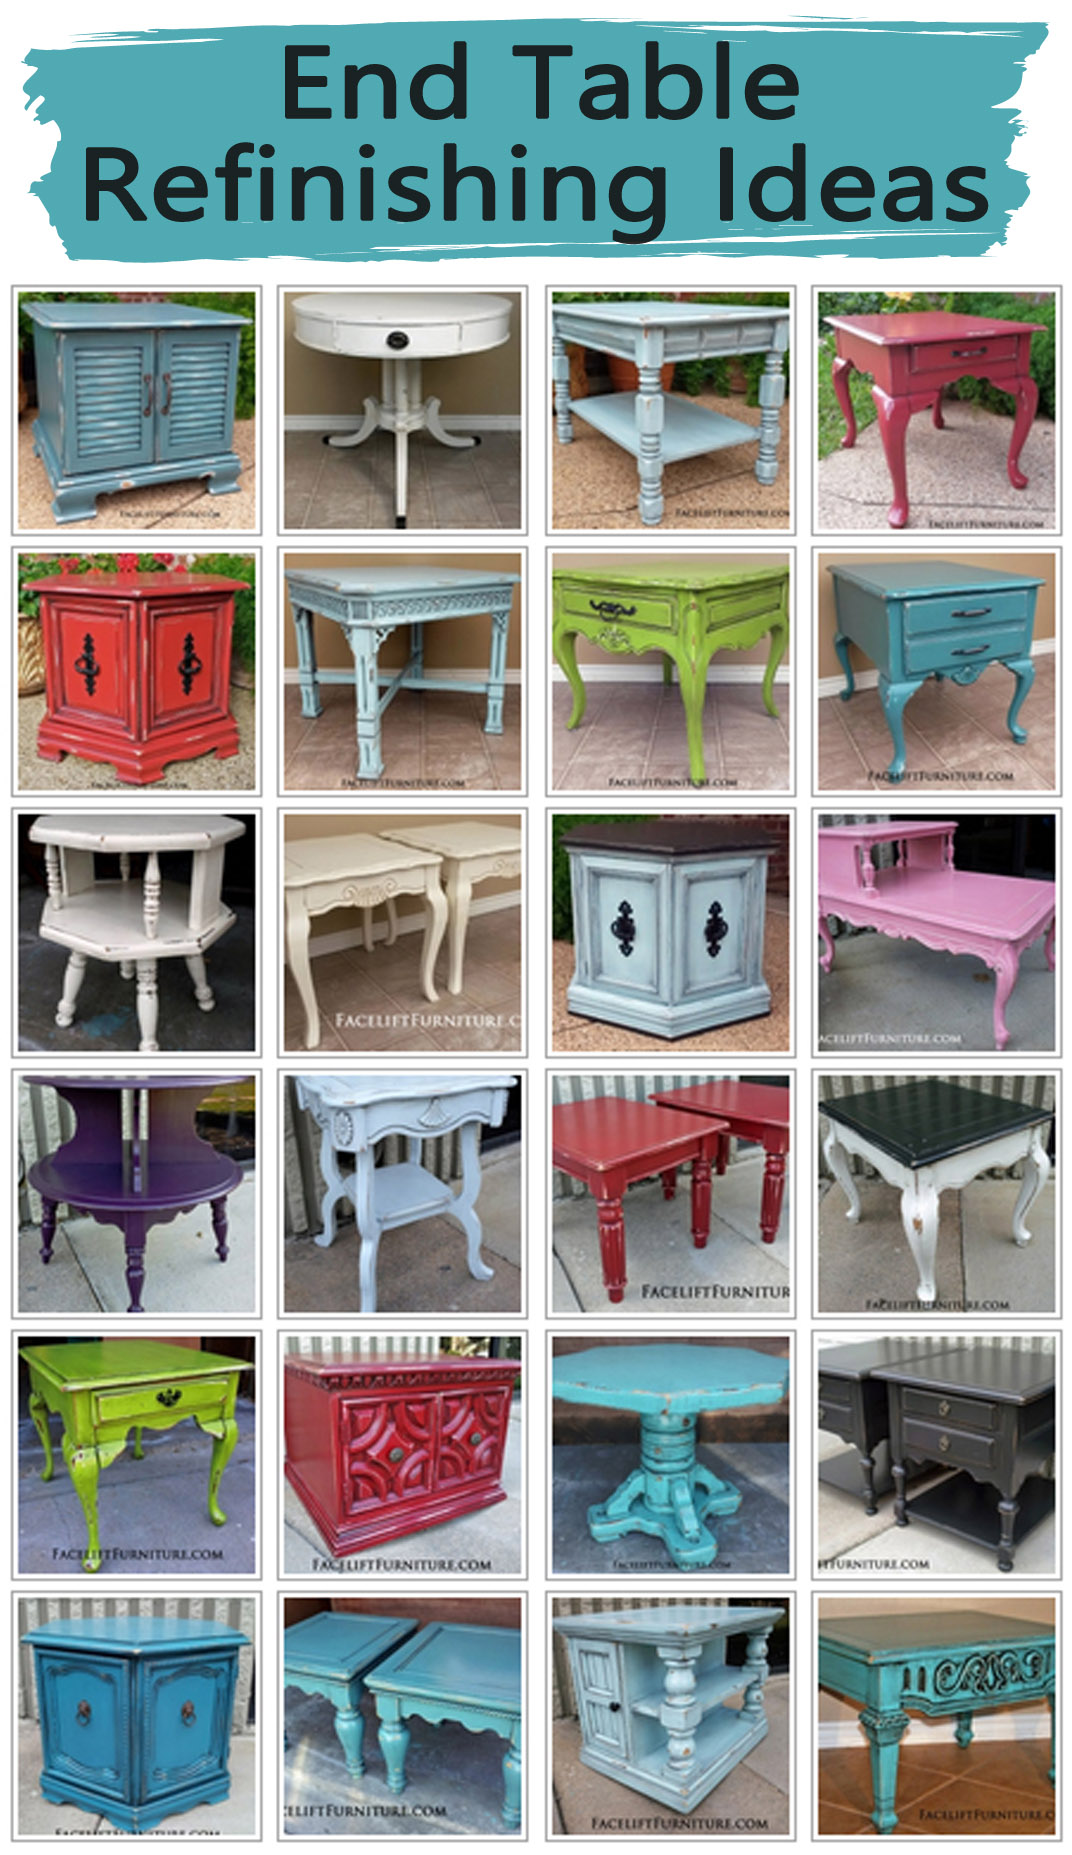 Facelift Furniture - Painted, Glazed & Distressed Furniture